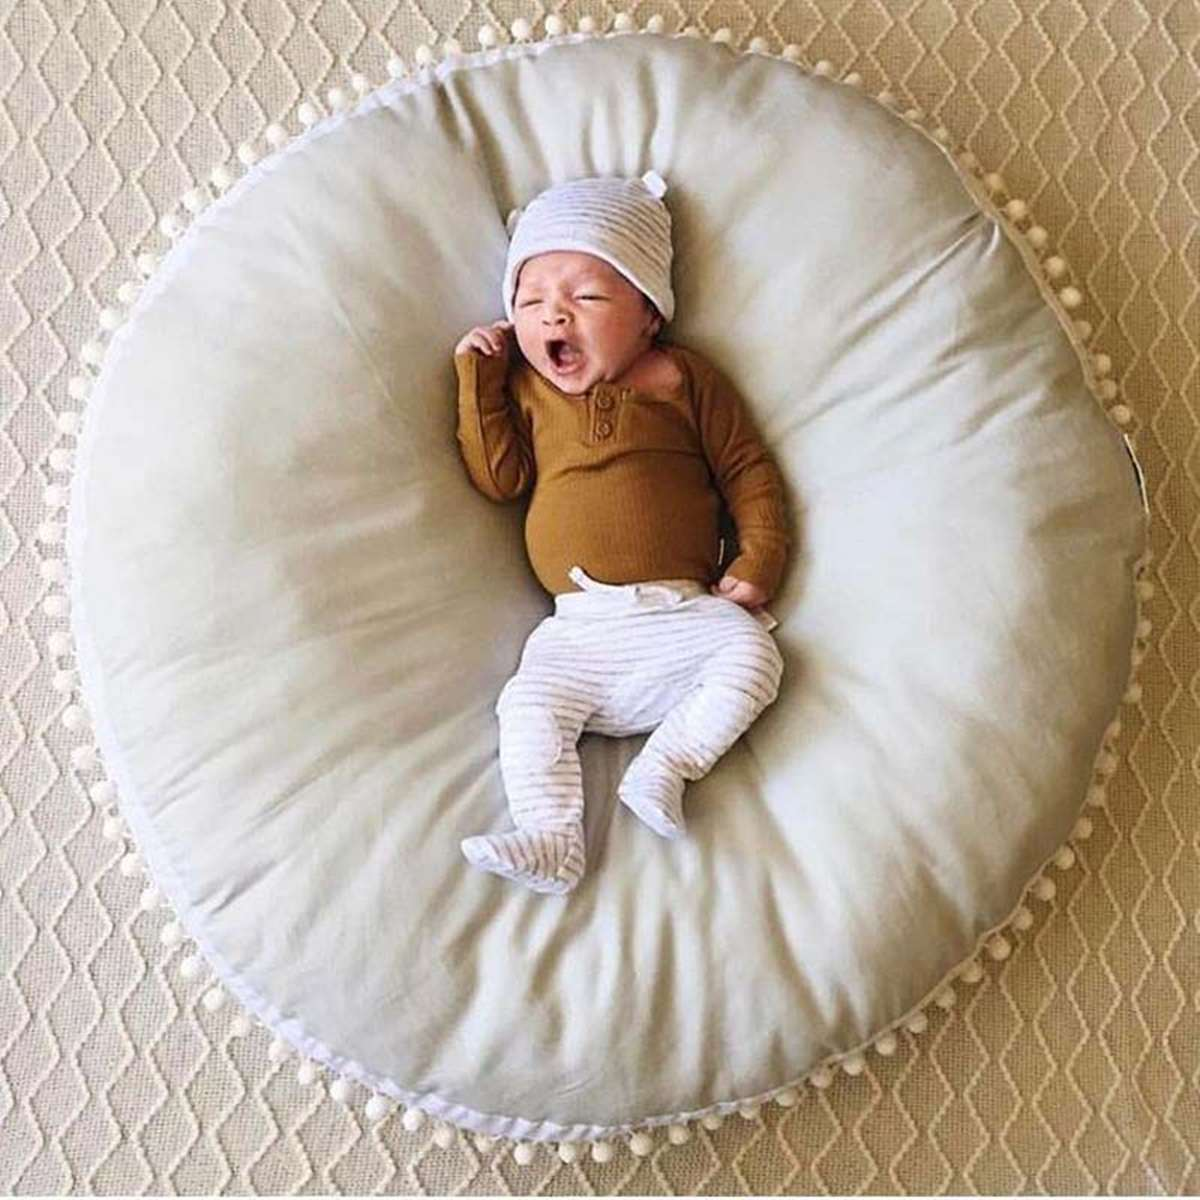 2019 Baby bean bag chair Cotton Round Soft PlayMats Crawling Pad Home Children Kids Room Decor 90*90cm Yellow Grey